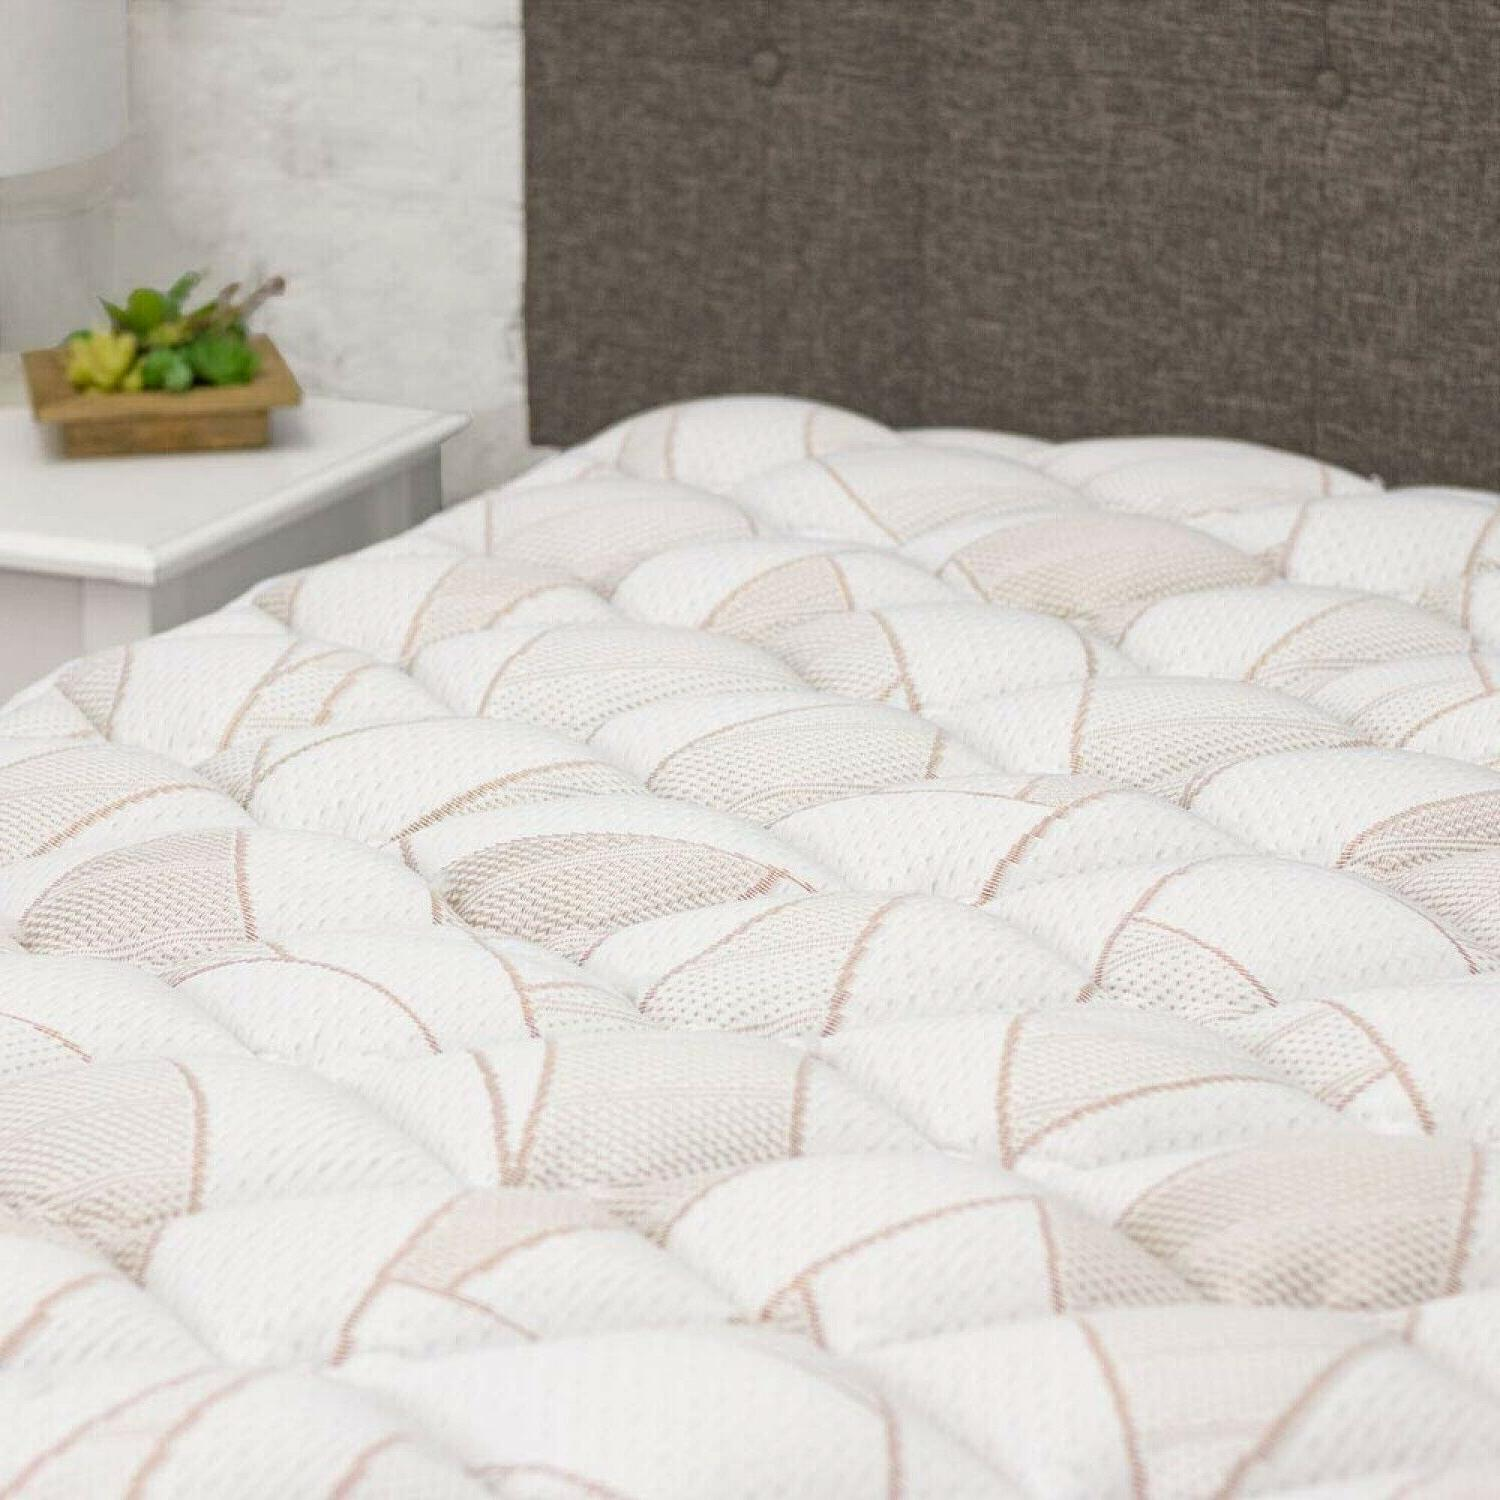 Copper Infused Mattress with Extra